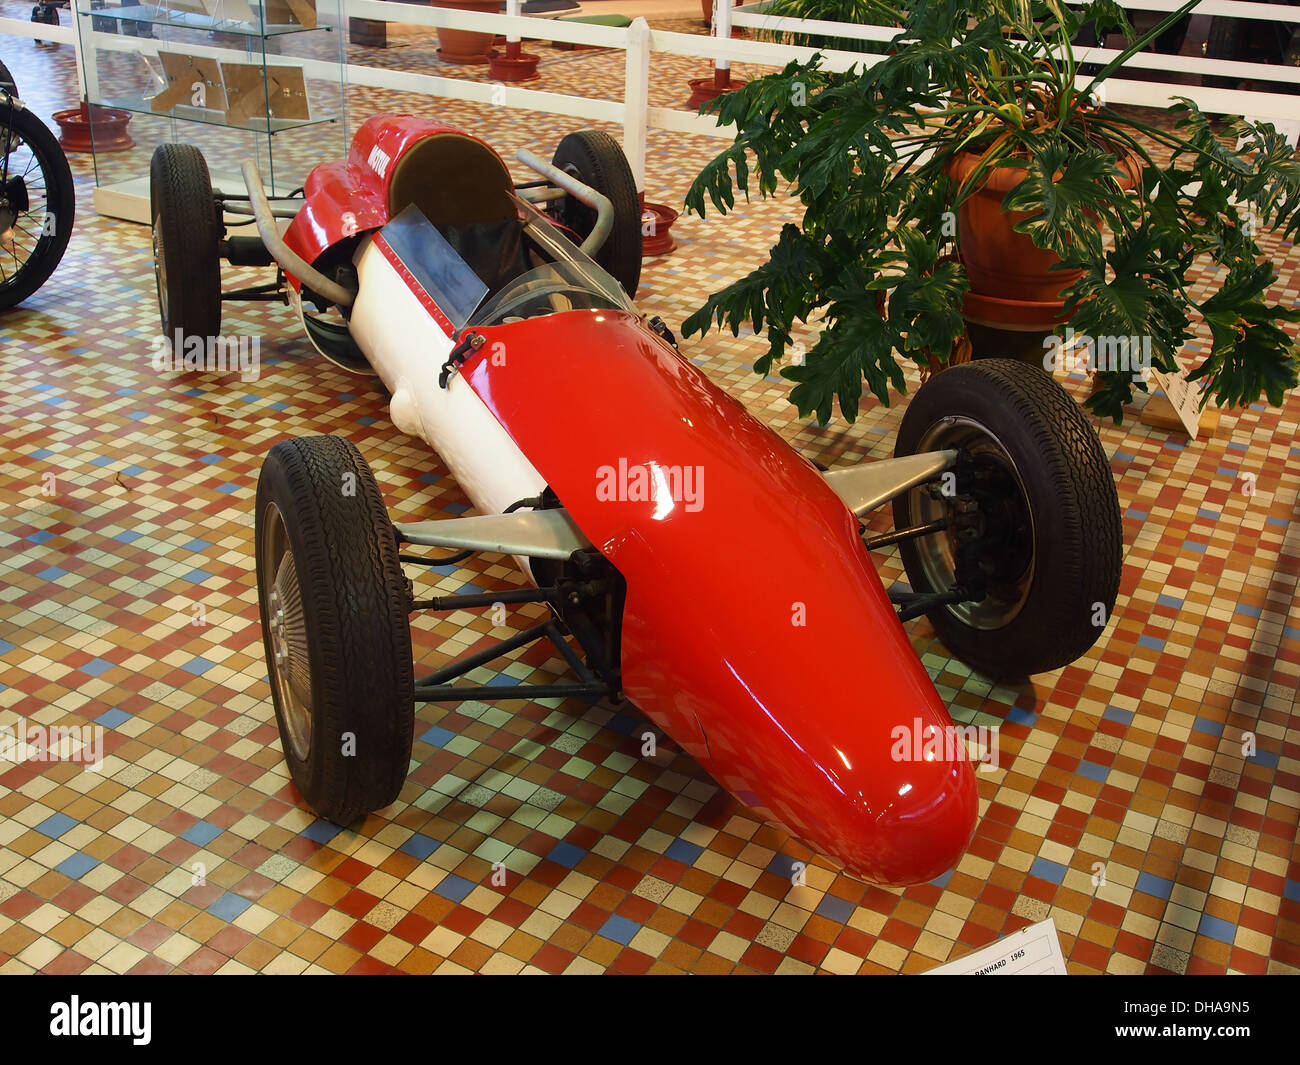 1965 Panhard Formulte IV - Marque AUMONT, air cooled 2 horizontal placed cylinders, 5cv, at the museum of automobiles at Talmont St.Hilaire 1 - Stock Image